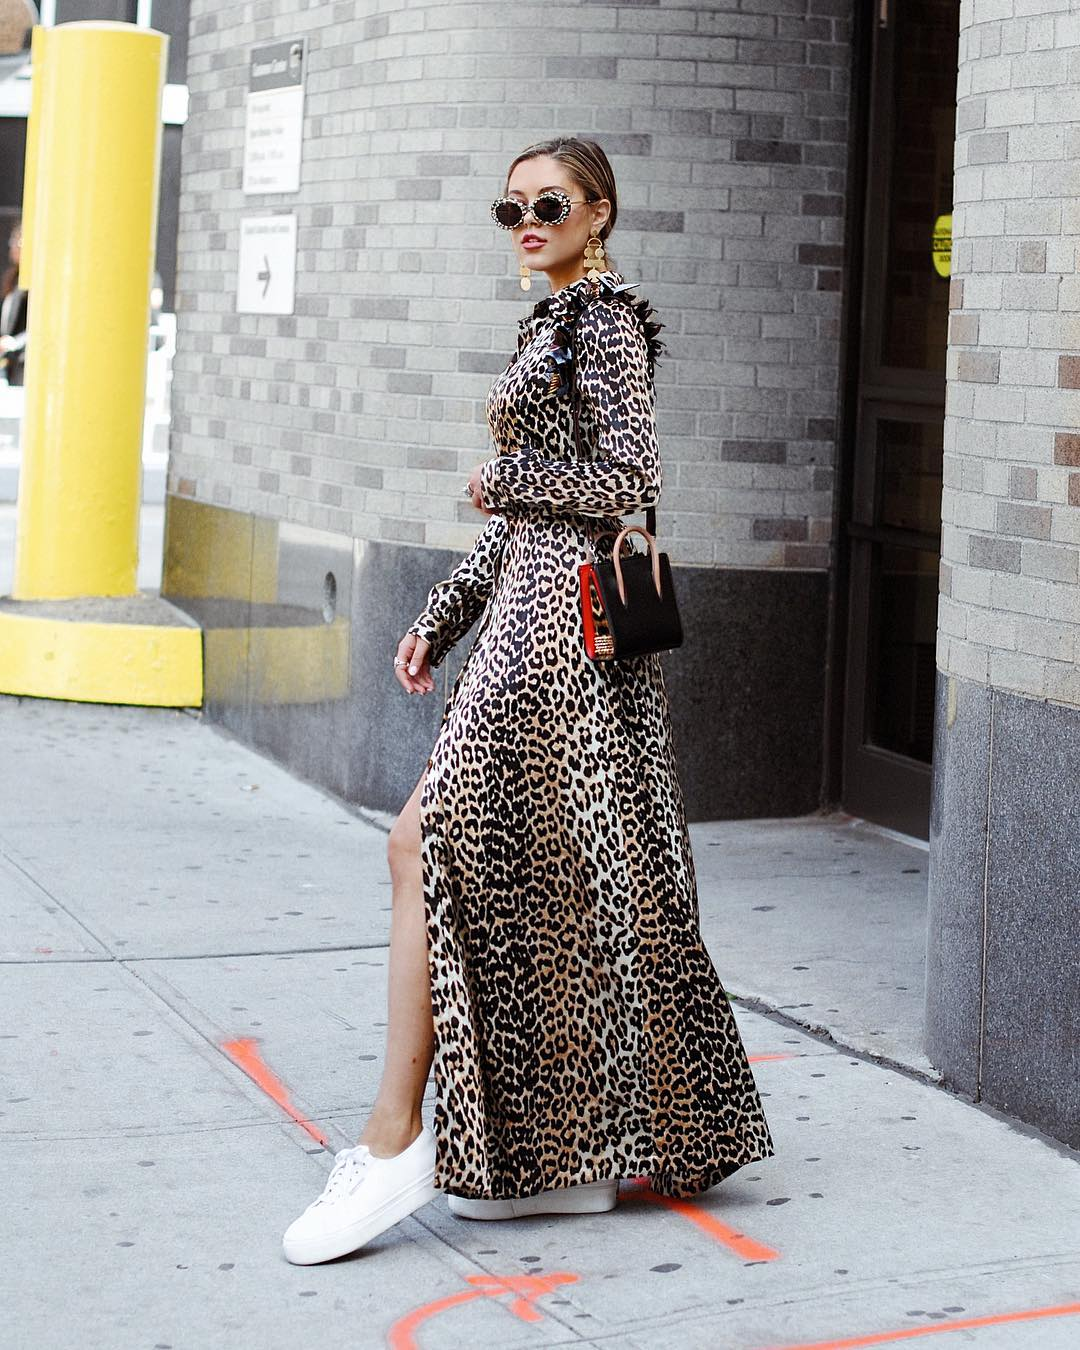 Jourdan 's looks were hard to miss on the streets of New York during this Fashion Week.